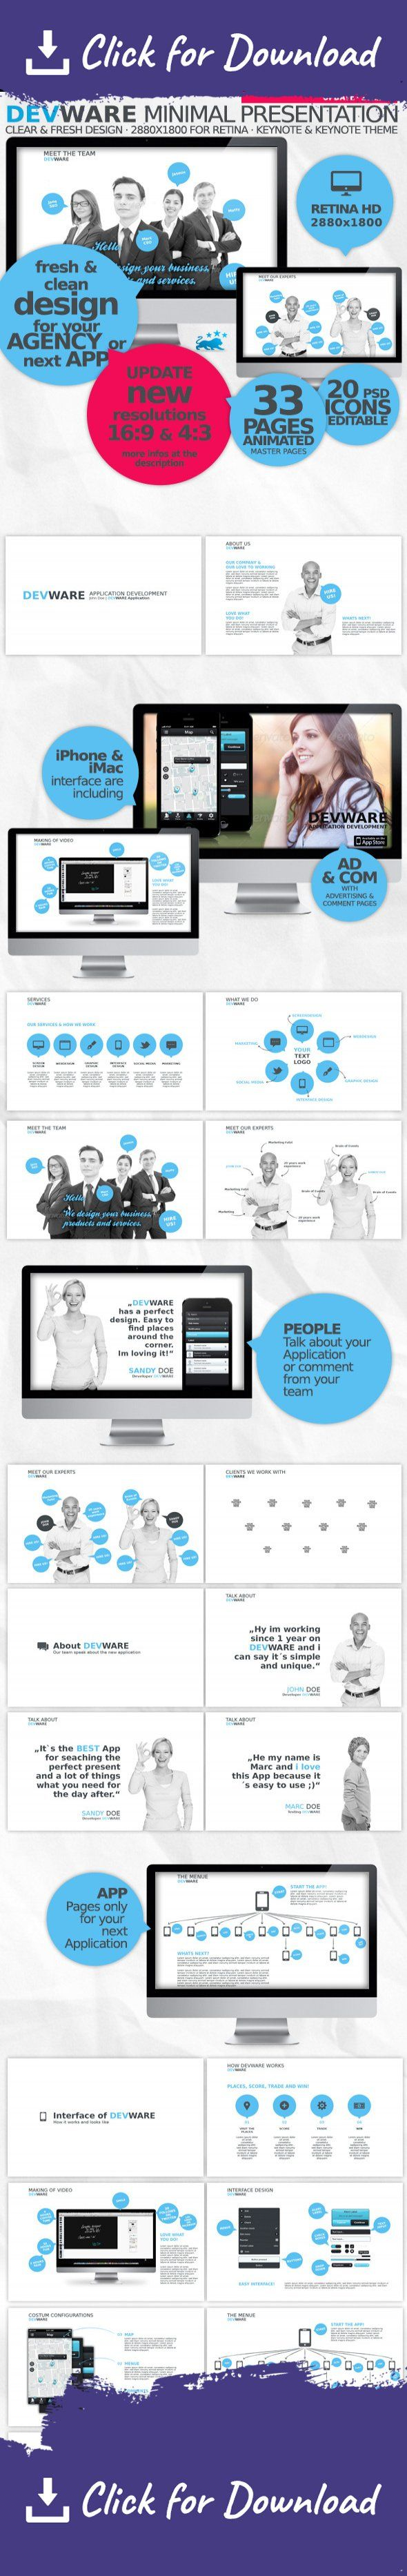 agency, animated, app, application, business, clean, color, company, cool, corporate, corporate design, creative, design, designer, easy, fresh, idea, keynote, keynote theme, Media Theme, modern, multicolor, multipurpose, network, personal, portfolio, professional, psd, social, theme UPDATE · 2013 APRIL  + clean up the Master Files + every Master Files animated (so u cant do anything wrong) + more Resolutions + 16:9 | 1920×1080 + 4:3 | 1920×1440 incl. the 2880×1800 for Retina Displays ...